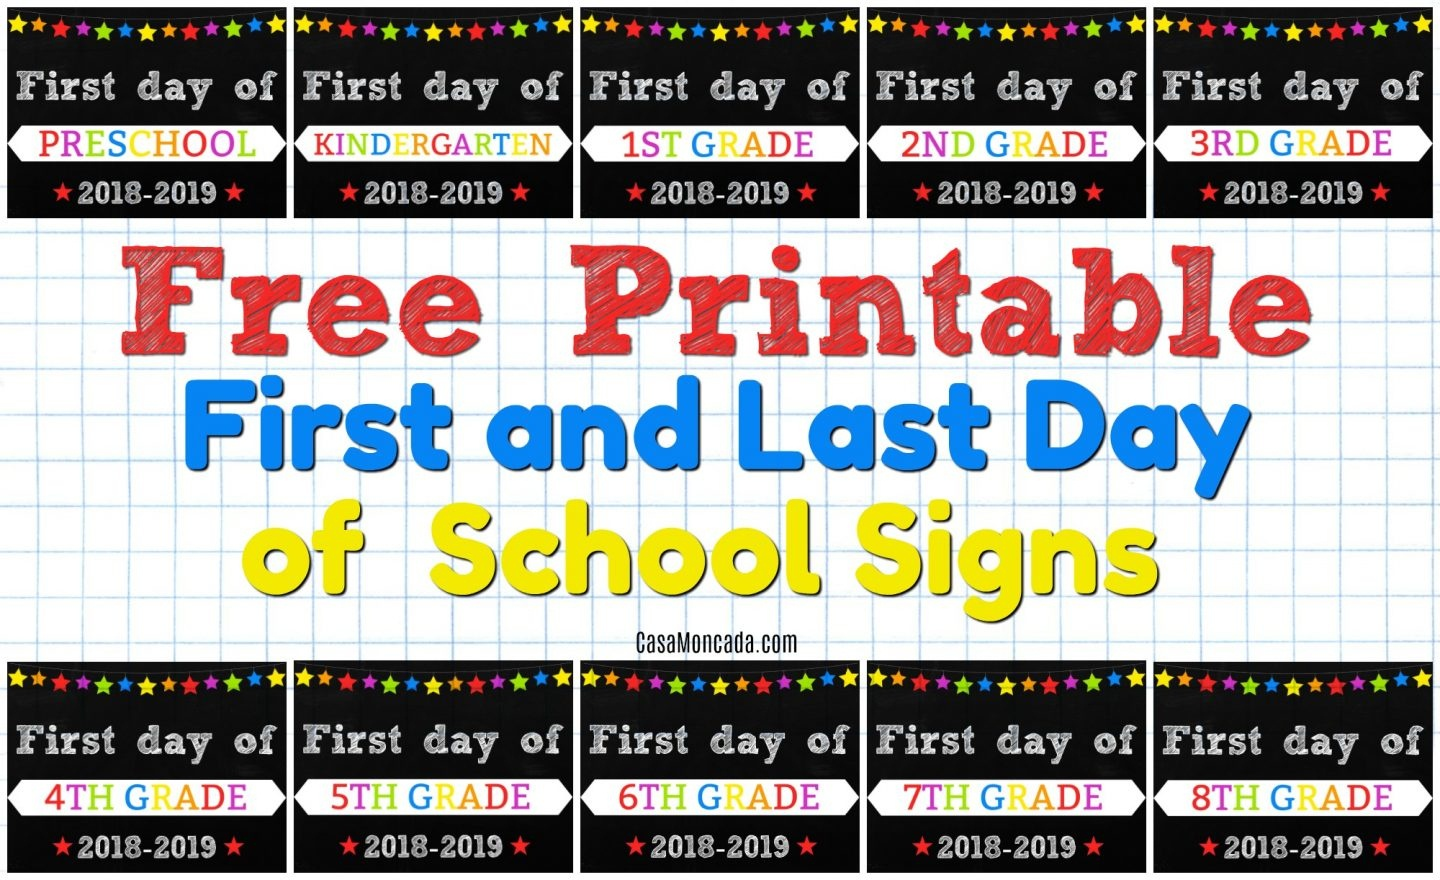 Free Printable First And Last Day Of School Signs - Casa Moncada - Free First Day Of School Printables